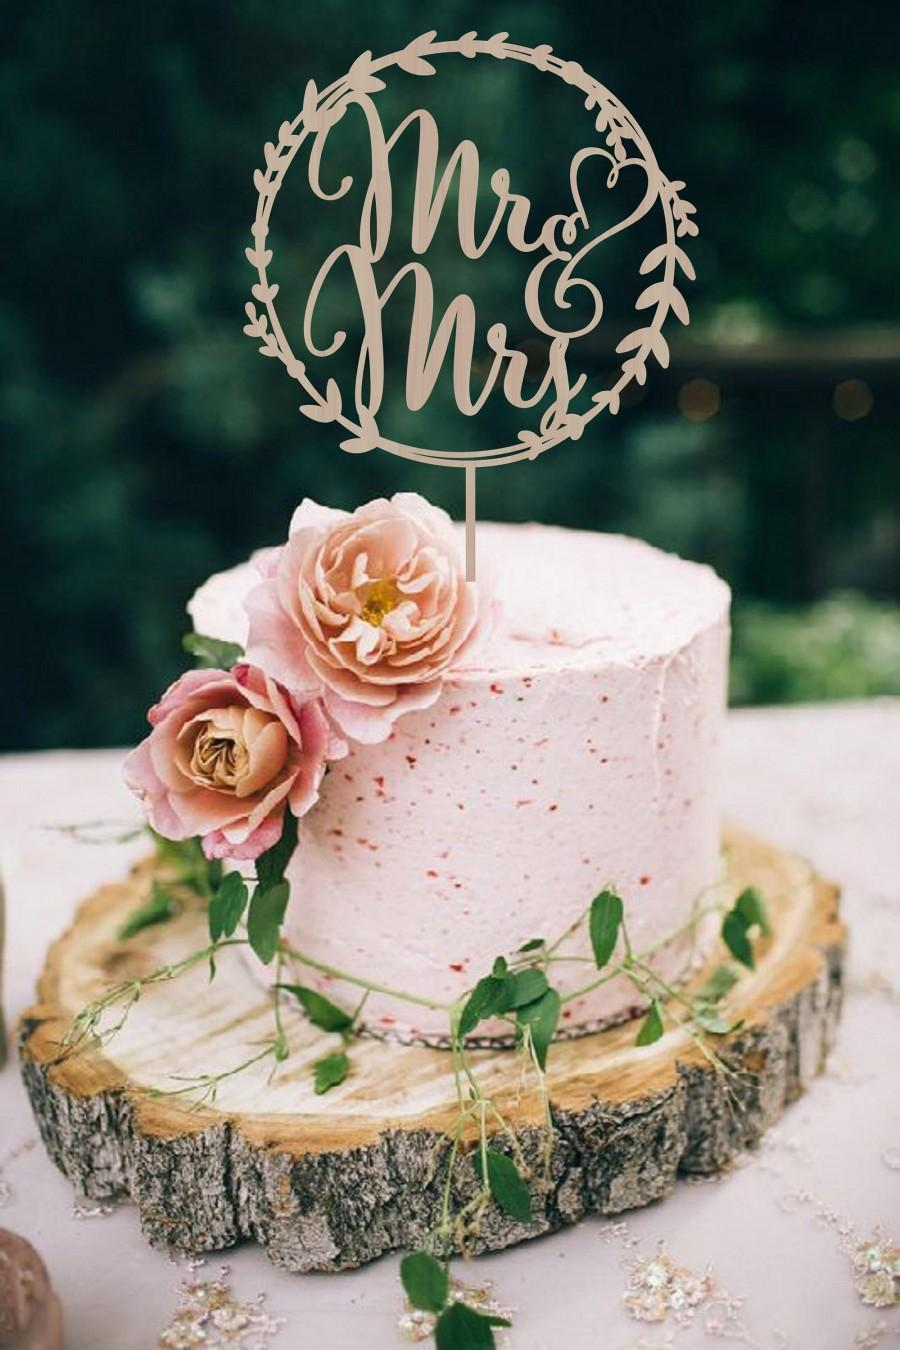 Mariage - Wedding Cake Topper Mr end Mrs,  Rustic Wedding Cake Topper, Wodden Cake Topper,  Wood Cake Topper Golden or Silver Wedding Topper